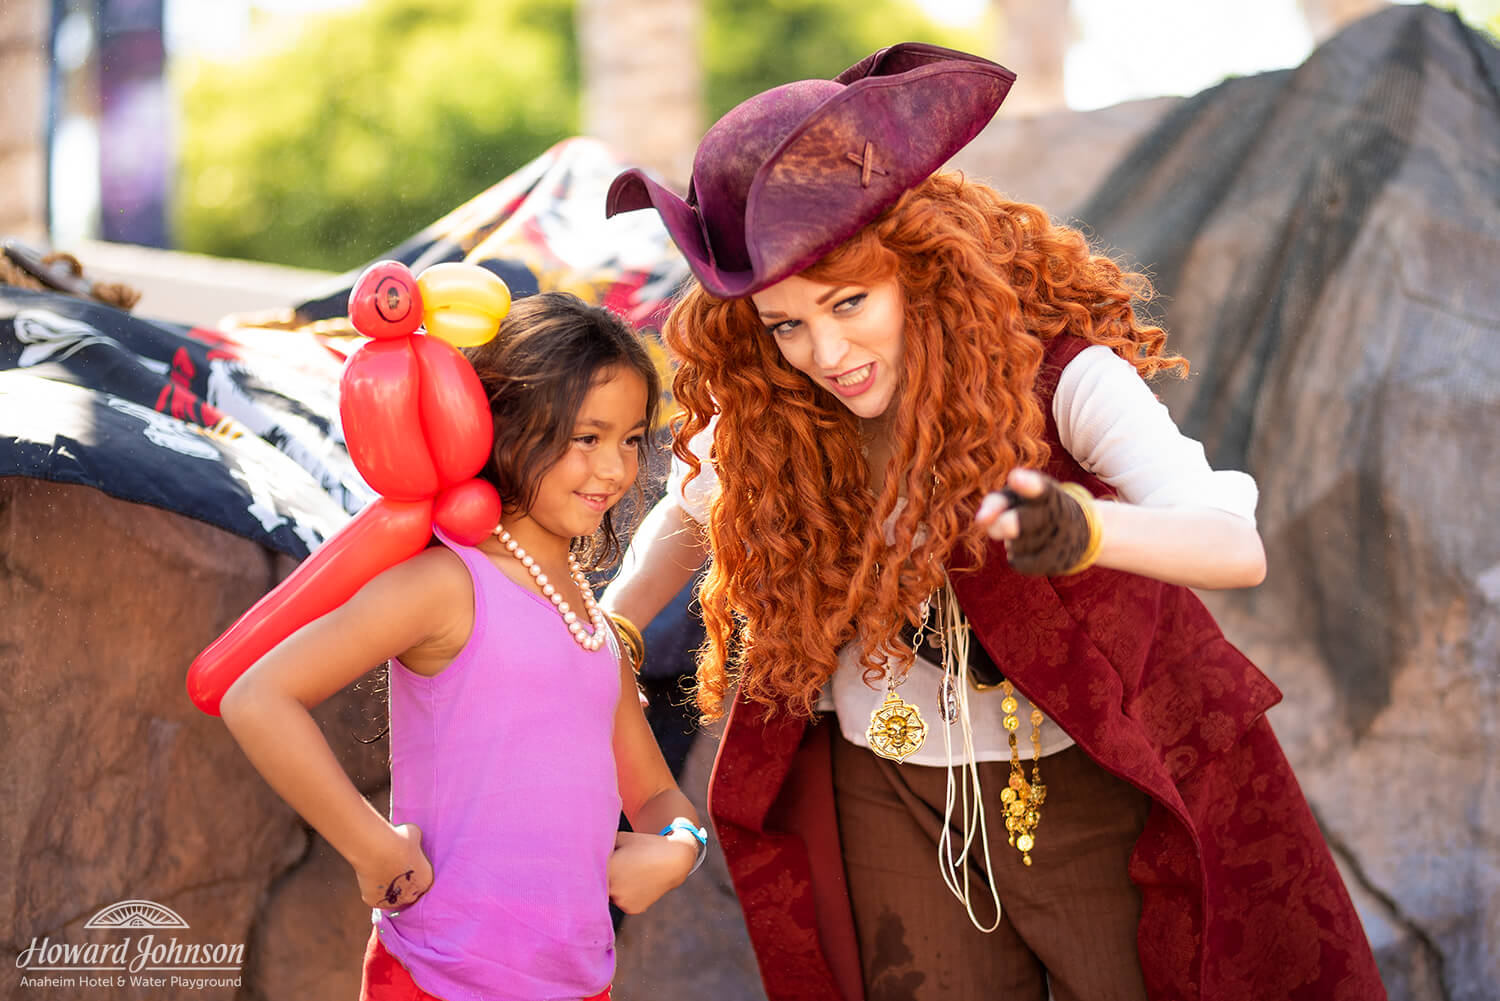 A little girl wearing an inflatable parrot on her shoulder poses for a picture with a woman in a pirate costume